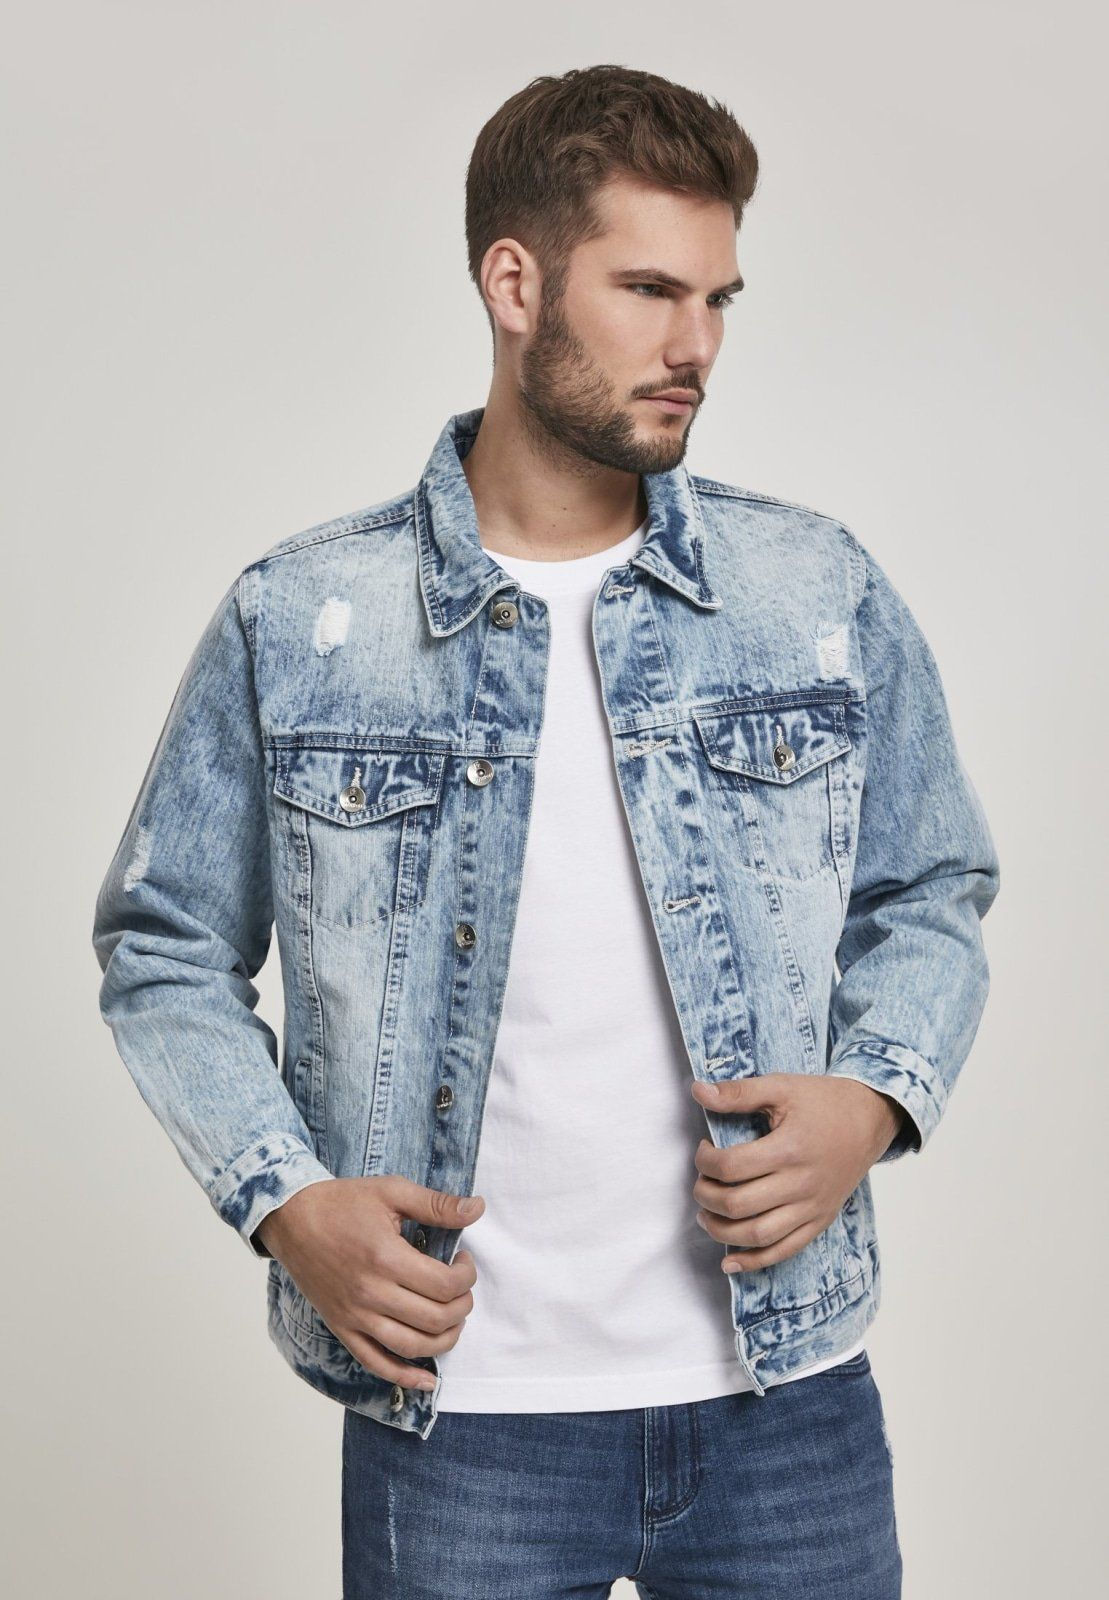 """This elaborate denim jacket convinces with many well thought-out details, creates a consistent look and convinces with love for form and function equally. It is the perfect companion for balmy summer evenings or rambles through your area. In addition to tried and tested features such as the turned-down collar, button placket and buttoned breast pockets, the jacket features elaborately set seams, extensive washes and cleverly placed """"destroyed accents"""". A piece for men who know what they want.100"""